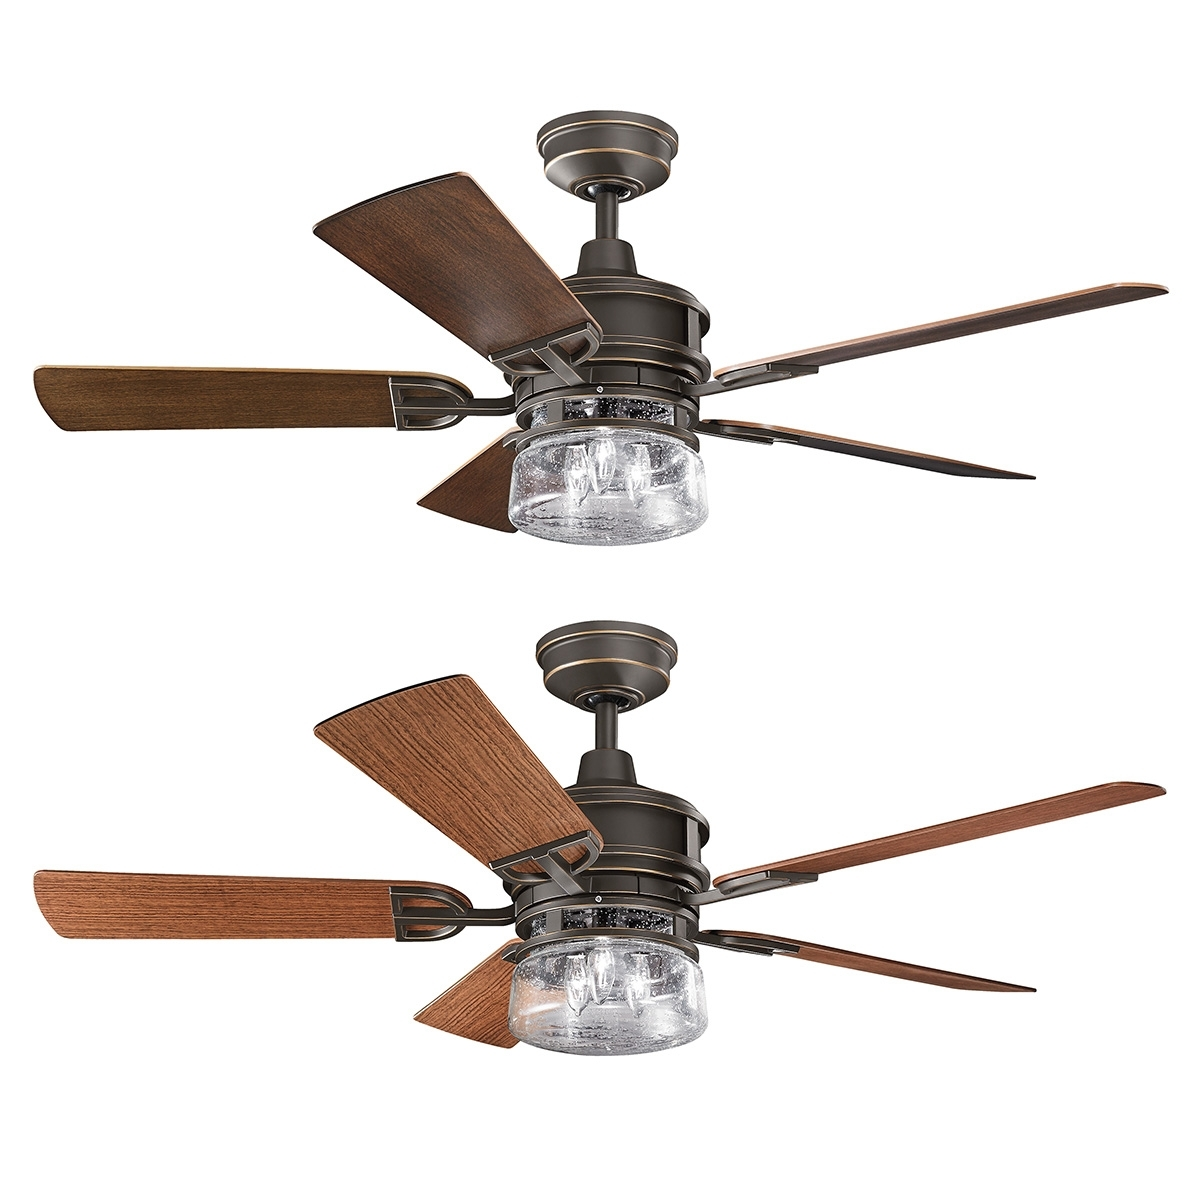 Kichler Outdoor Ceiling Lights With Well Known Outdoor Ceiling Fan With Lightkichler (View 17 of 20)